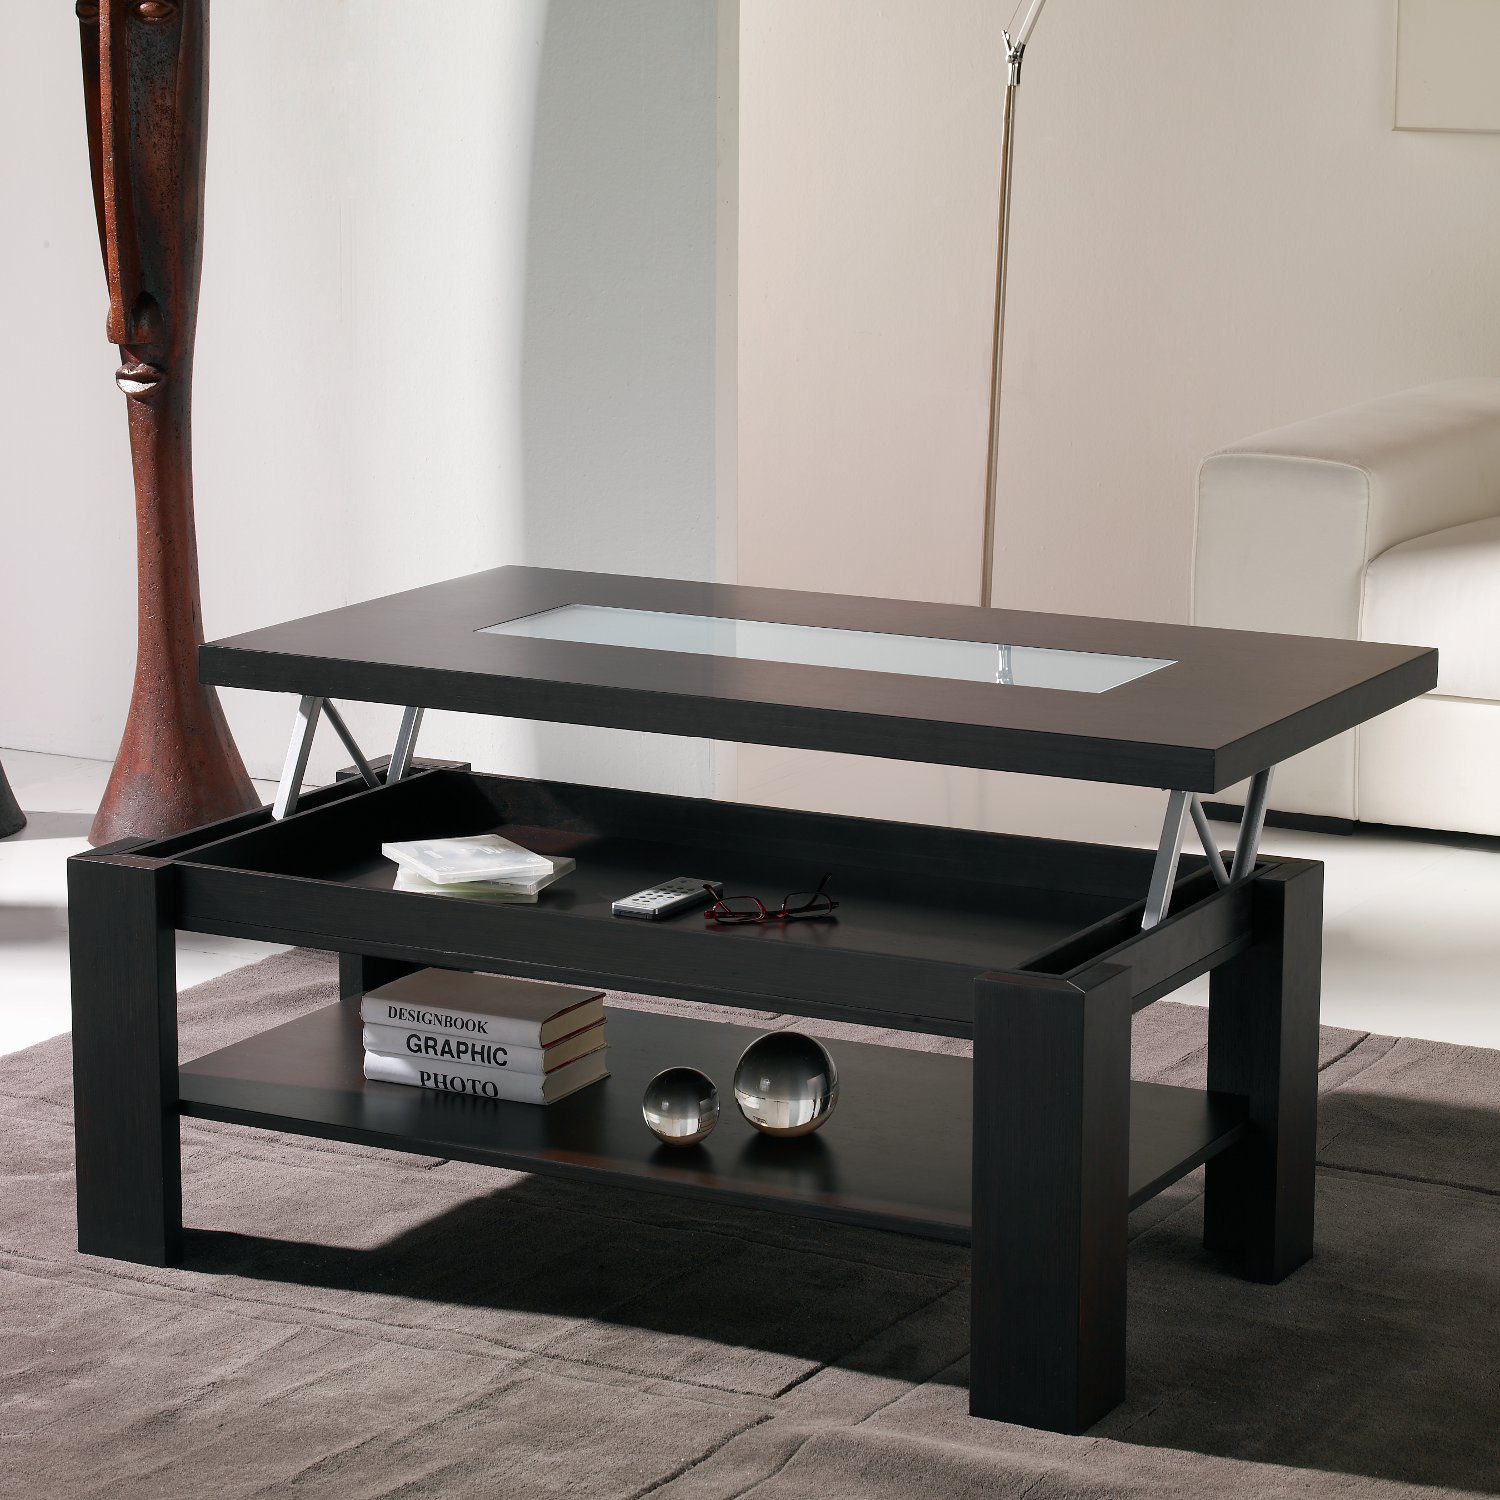 Table relevable pas cher - Table d architecte pas cher ...